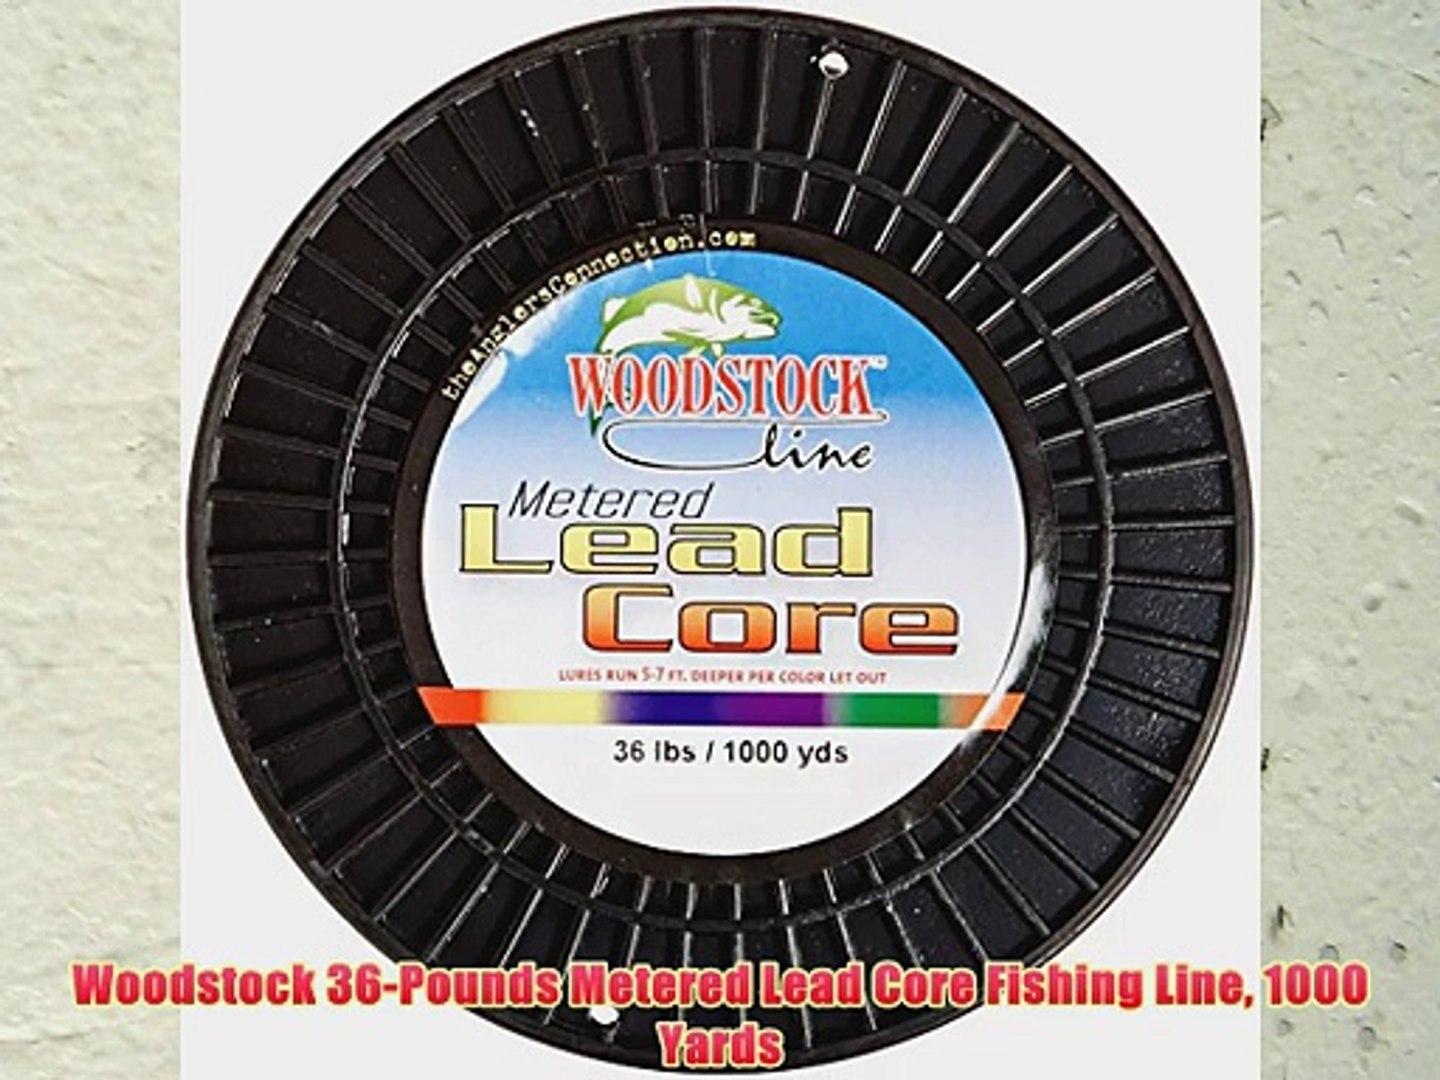 Woodstock 15-Pounds Metered Lead Core Fishing Line